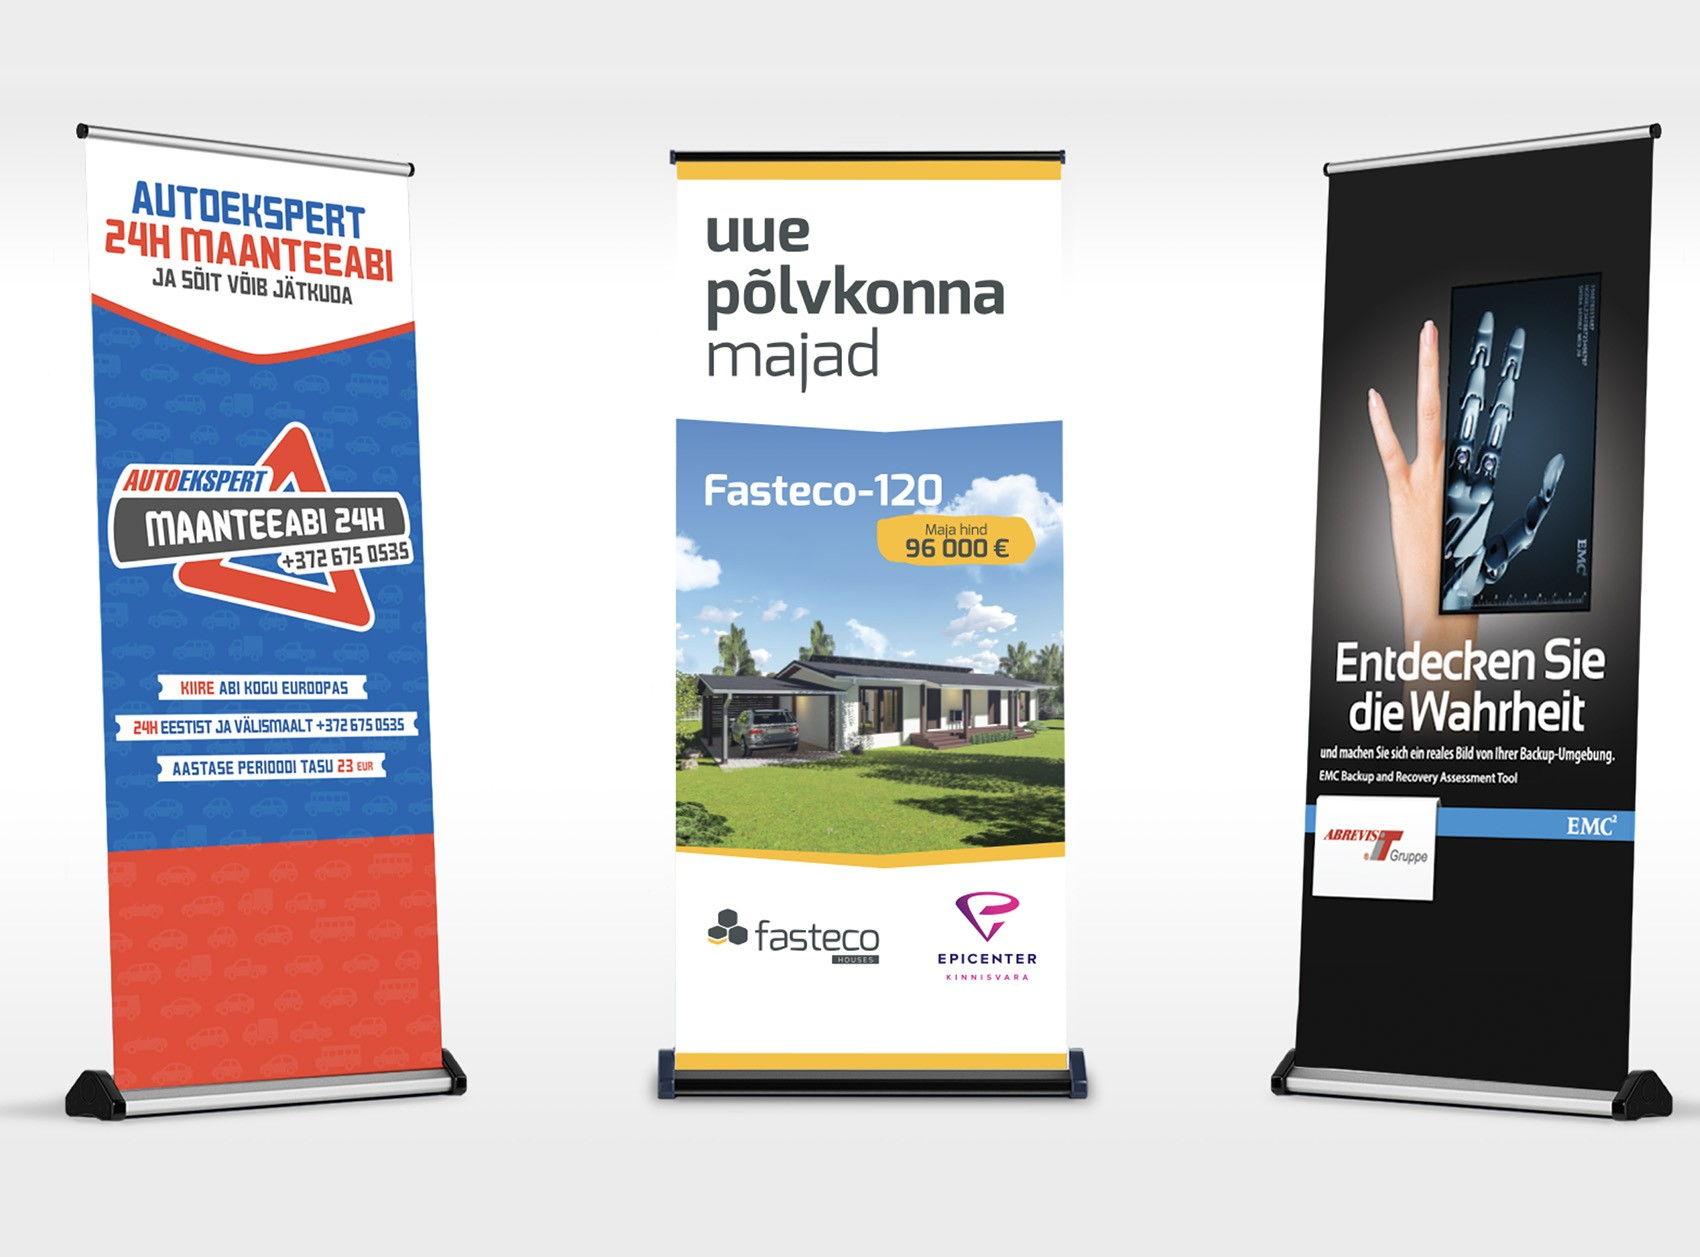 Roll-up ads